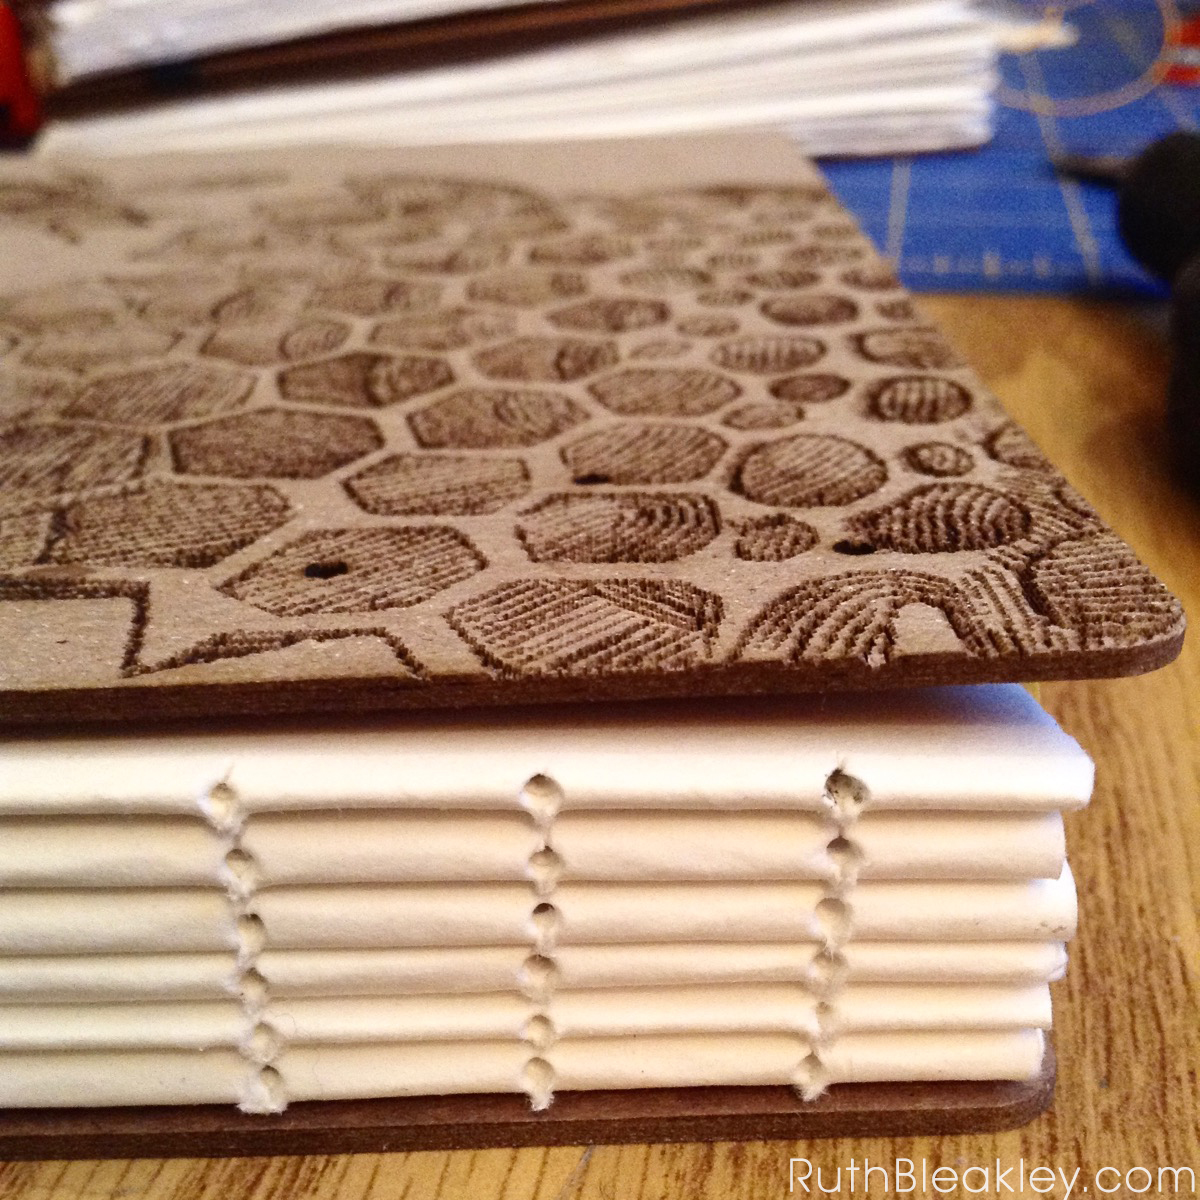 Honeybee Watercolor Sketchbook handmade by Ruth Bleakley with laser engraved cover - bookbinding sewing holes